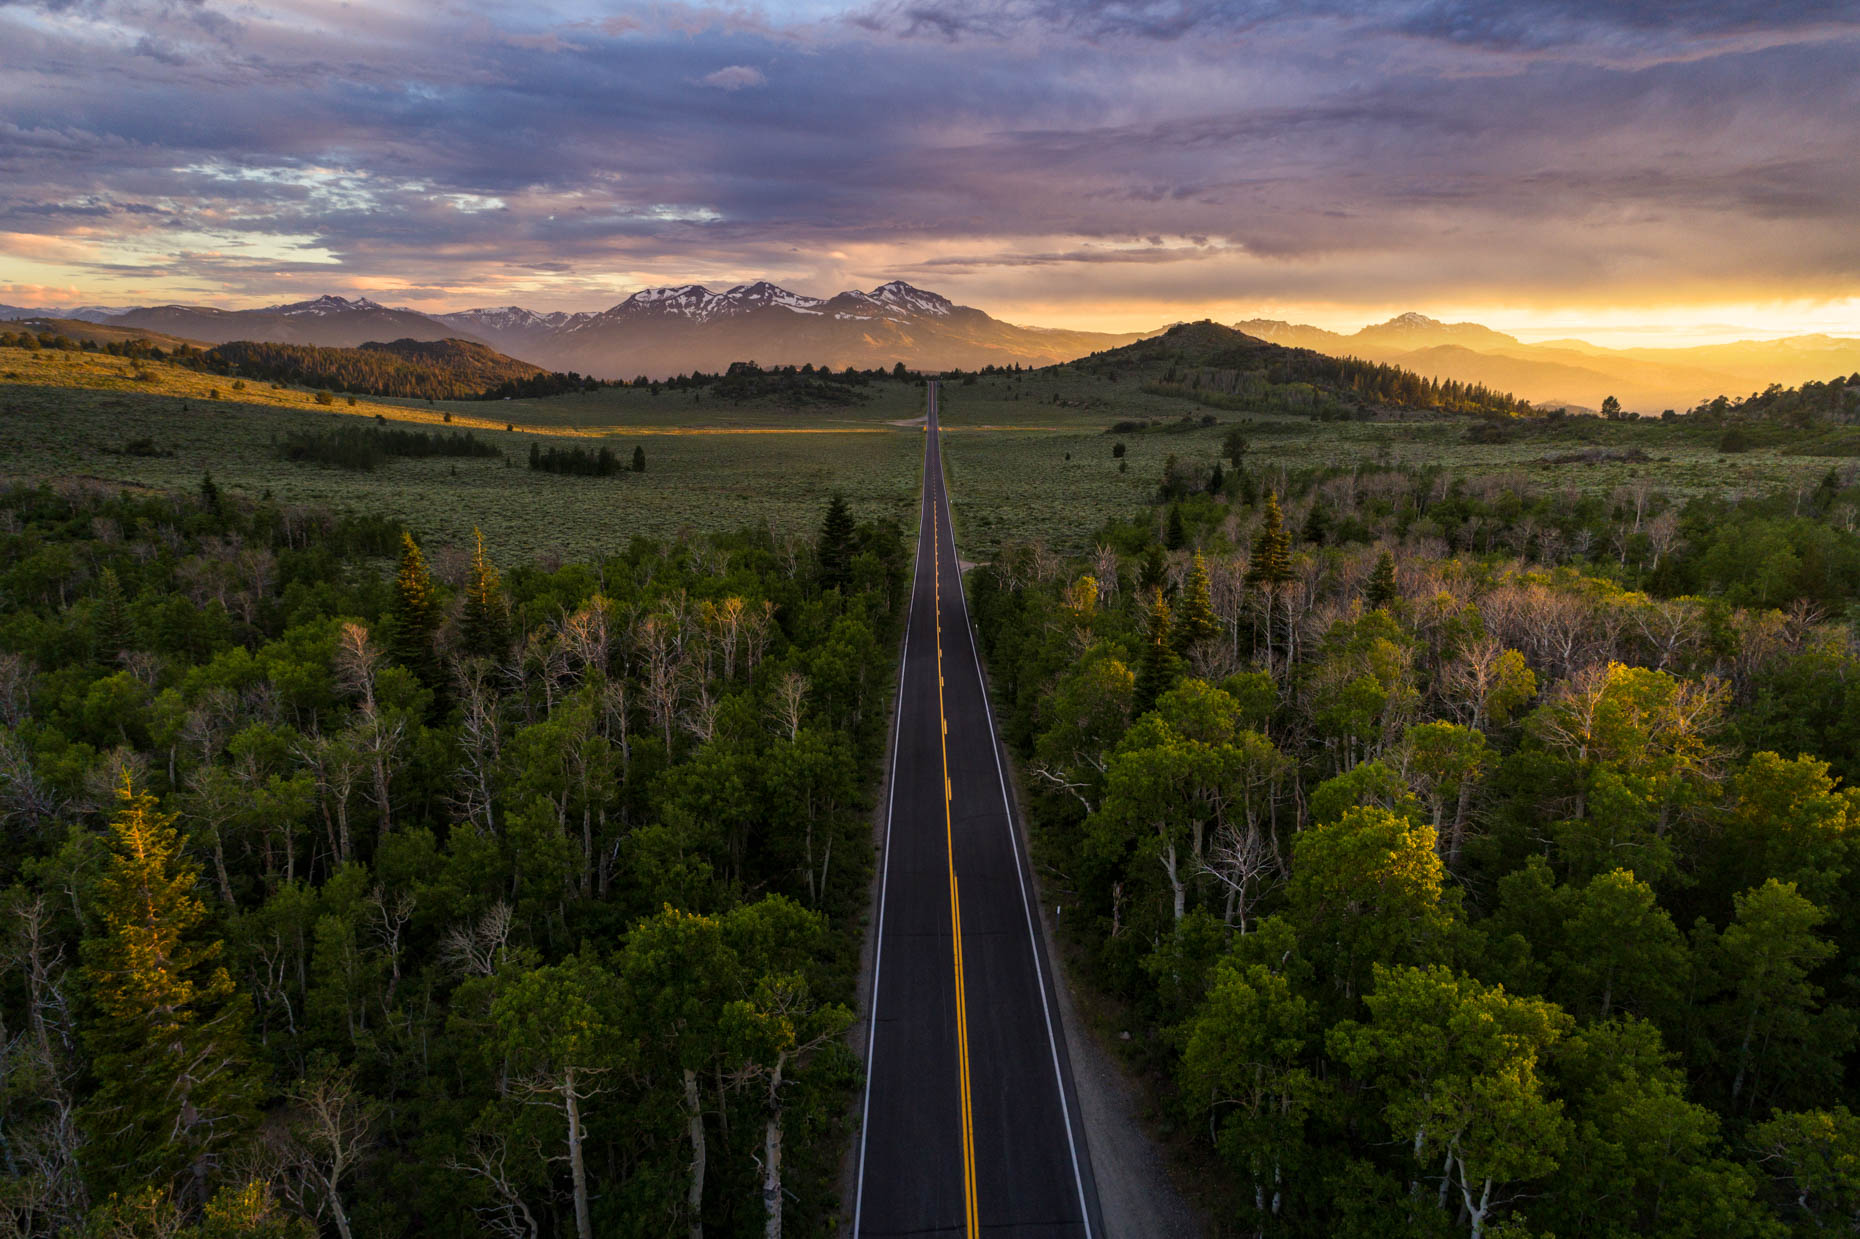 Drone - Monitor Pass Sunset, Markleeville, California